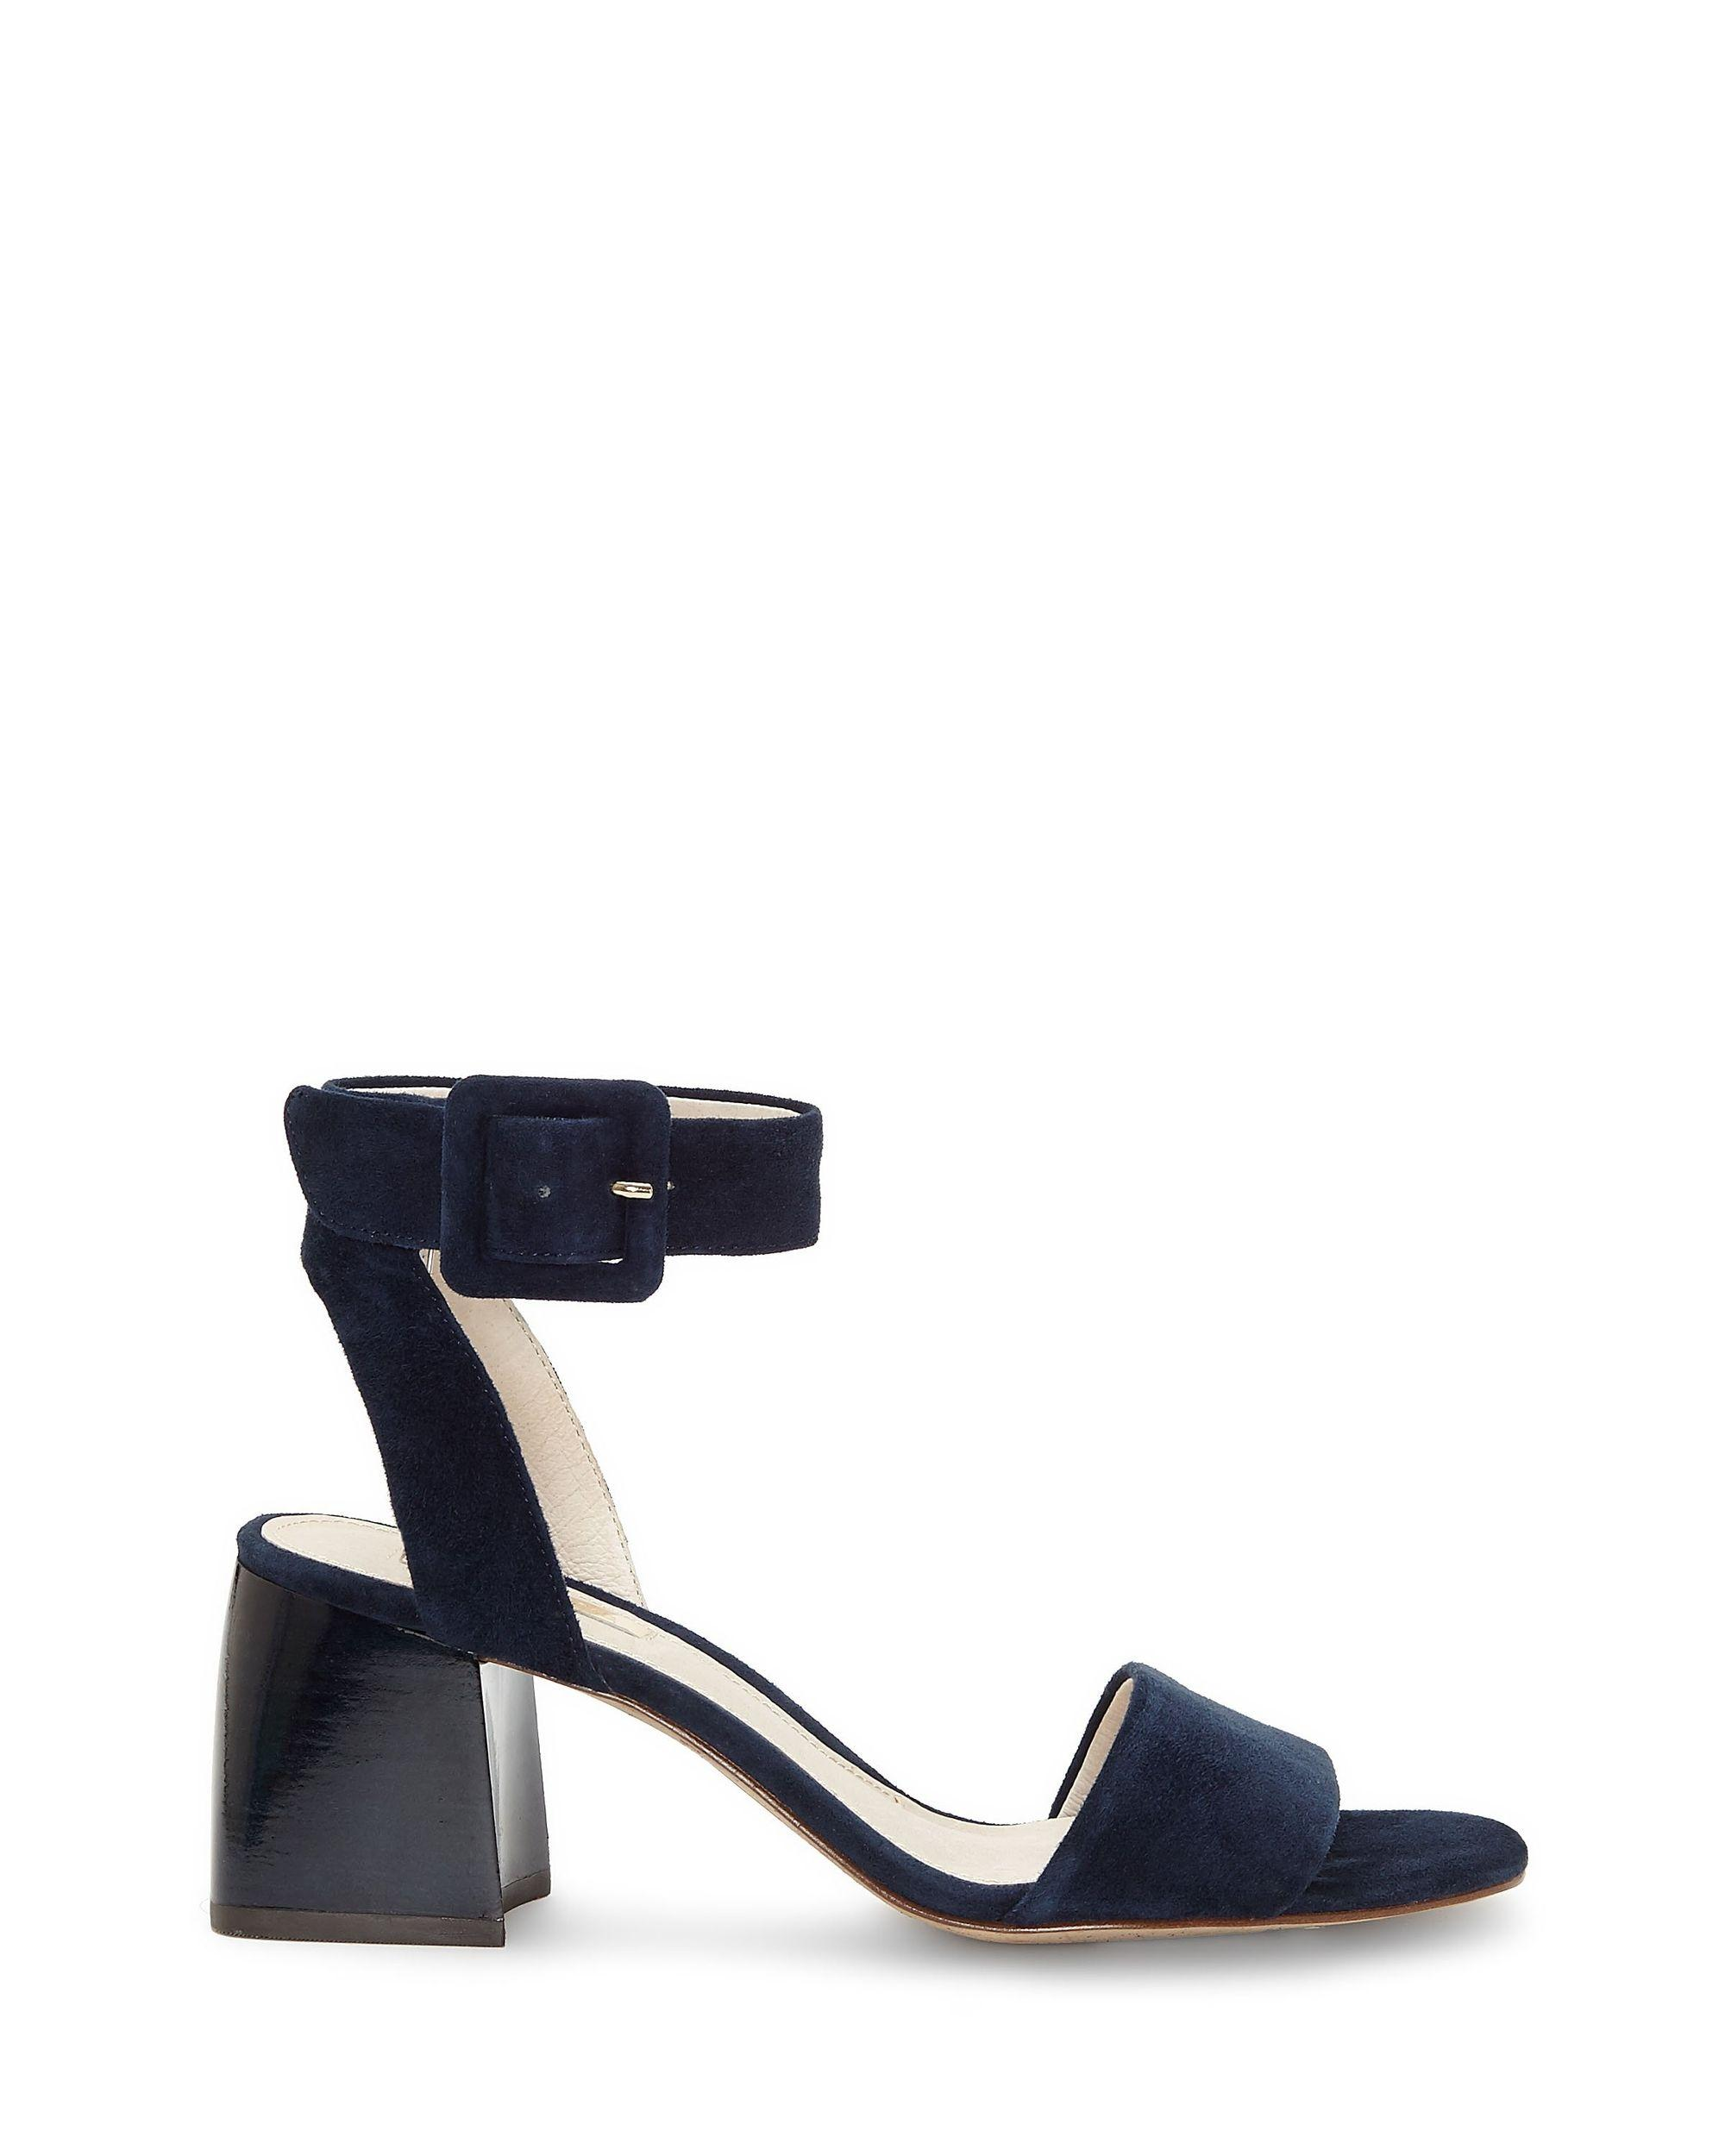 f25a3a1c088 Lyst - Vince Camuto Louise Et Cie Kaden – Ankle-buckle Sandal in ...